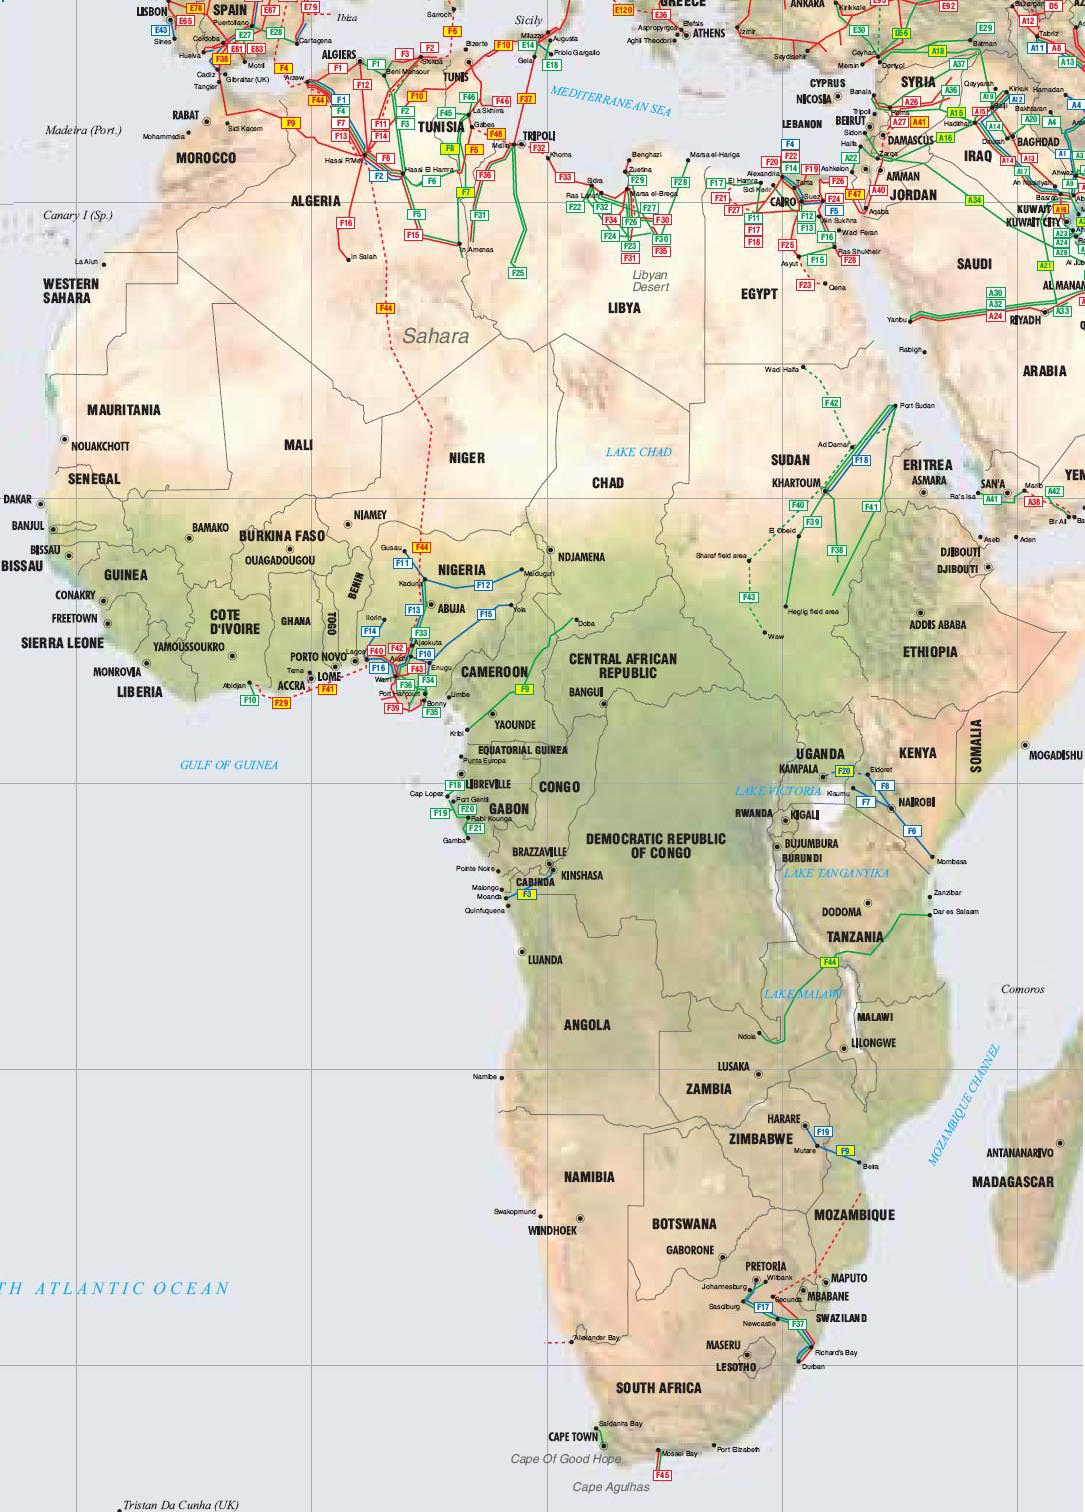 Africa Pipelines map   Crude Oil (petroleum) pipelines   Natural